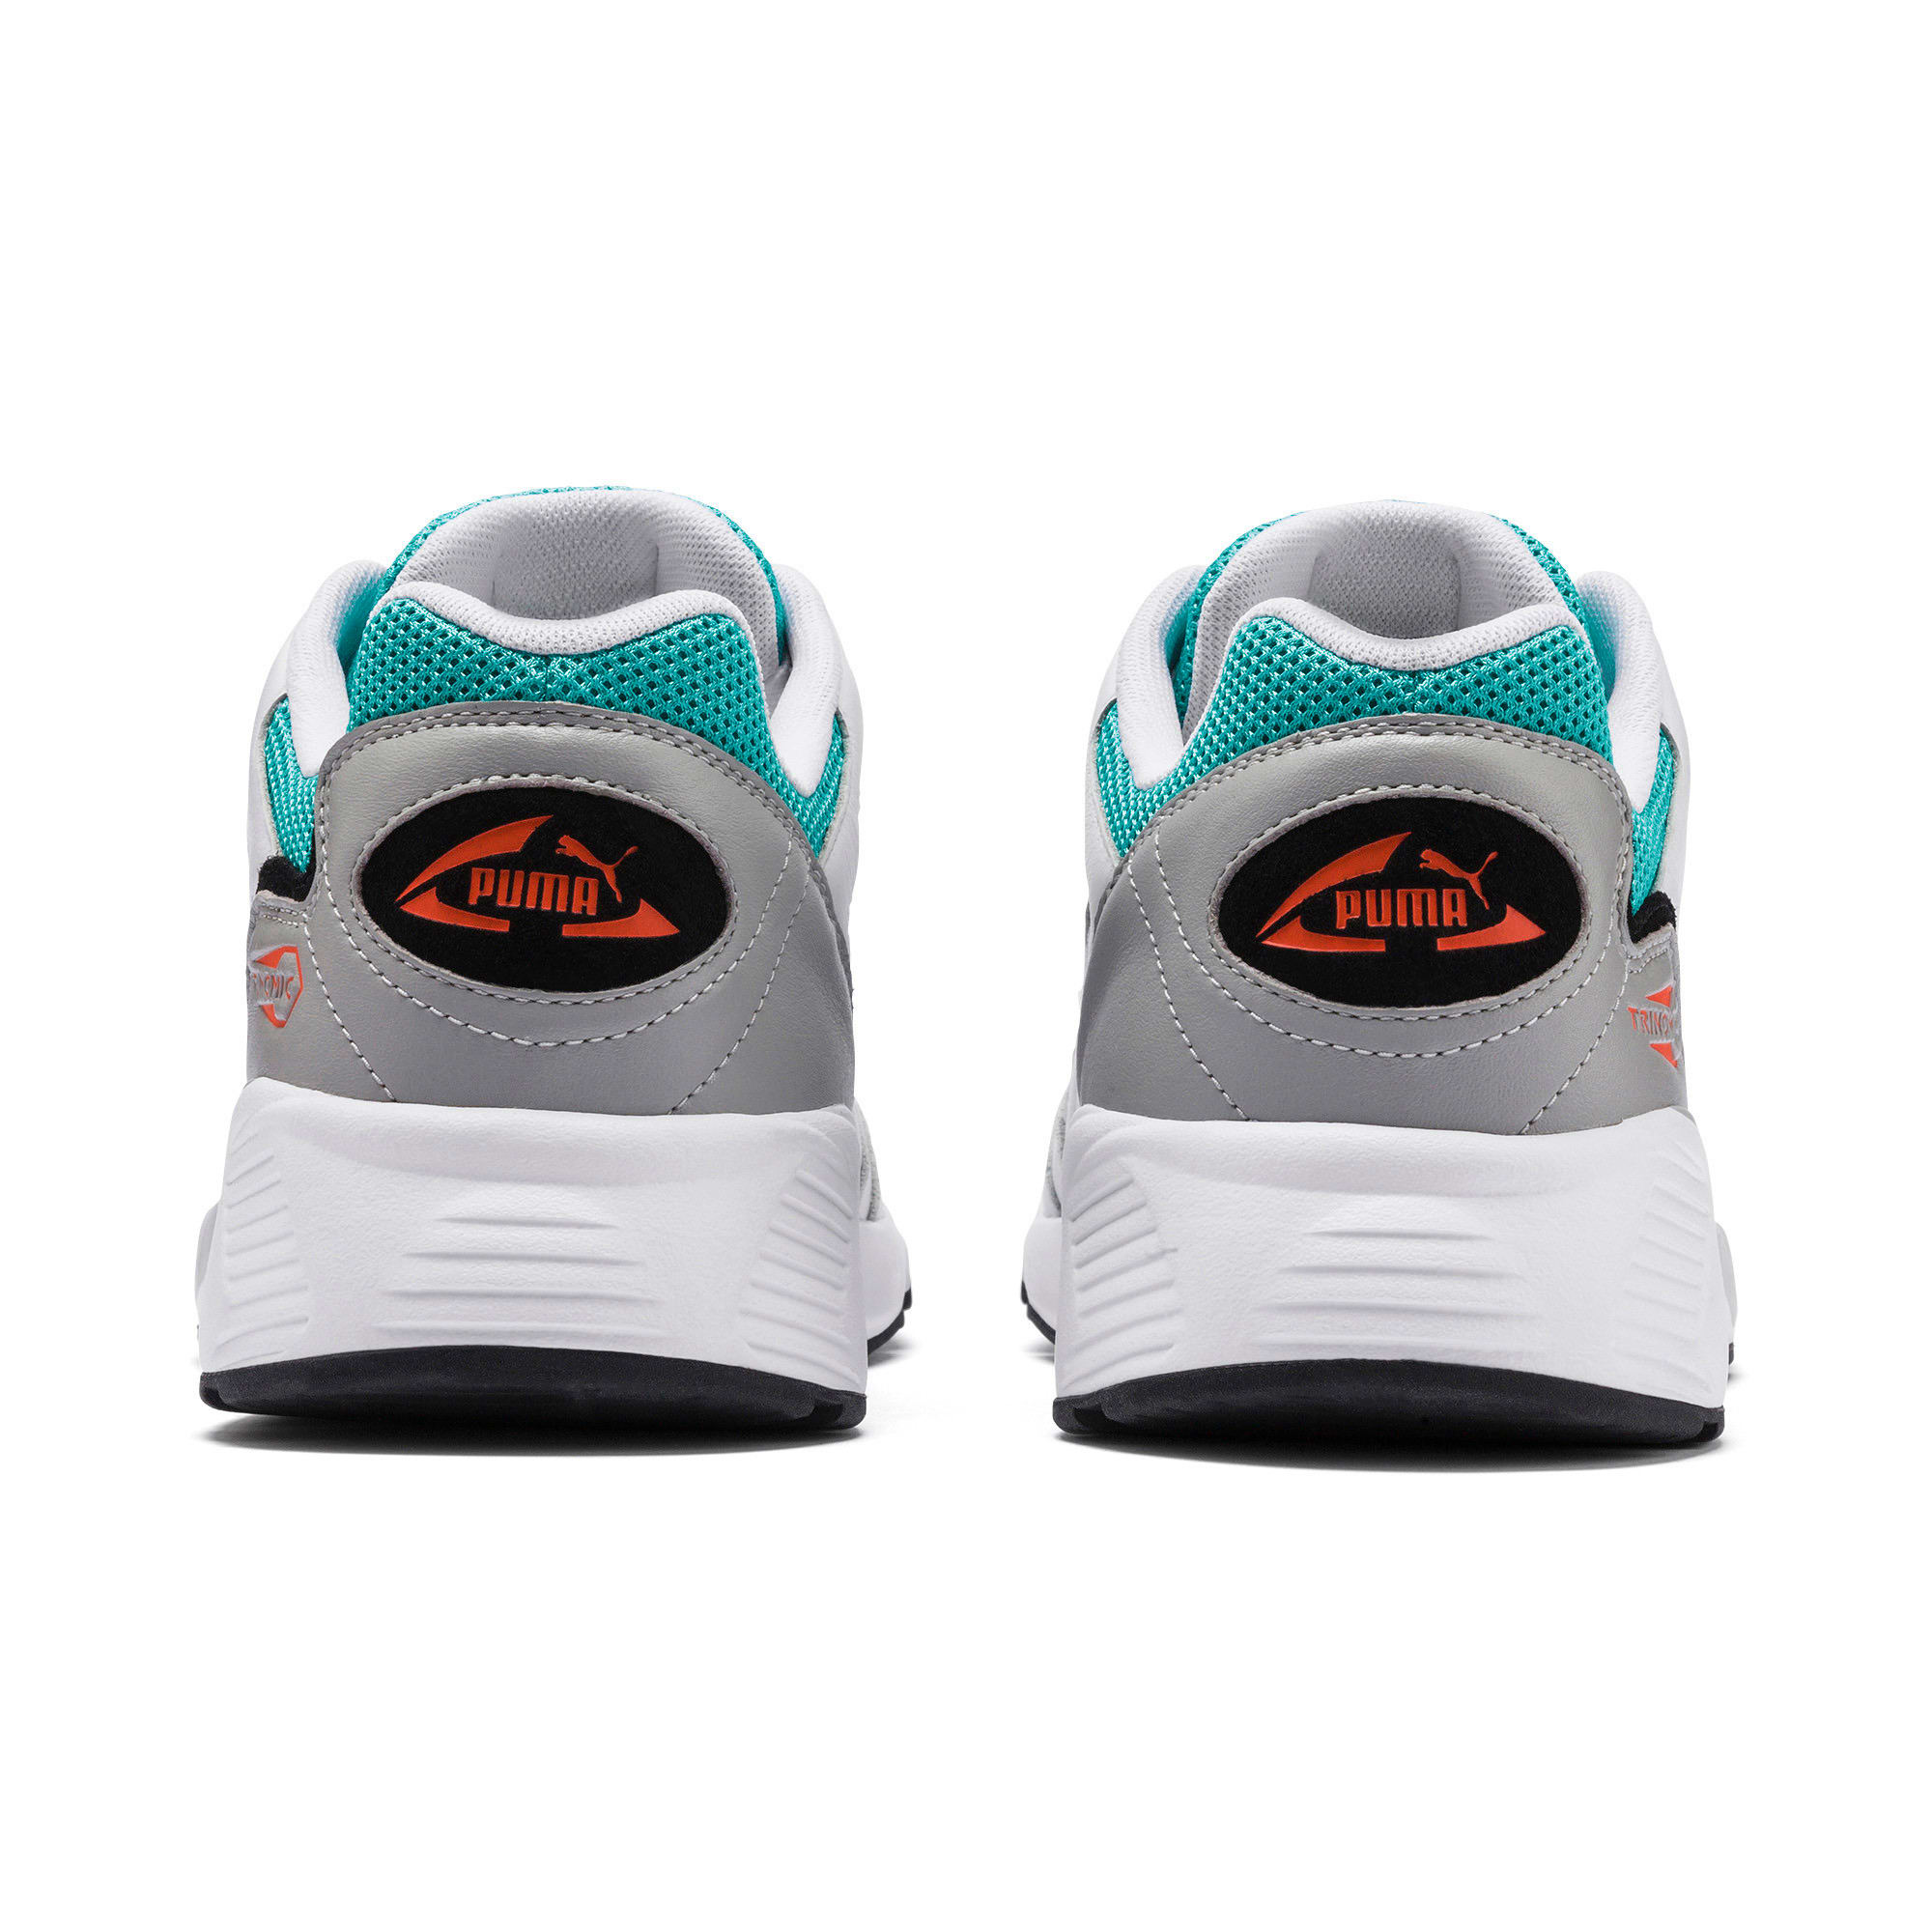 Thumbnail 3 of Prevail Classic Trainers, Puma White-Blue Turquoise, medium